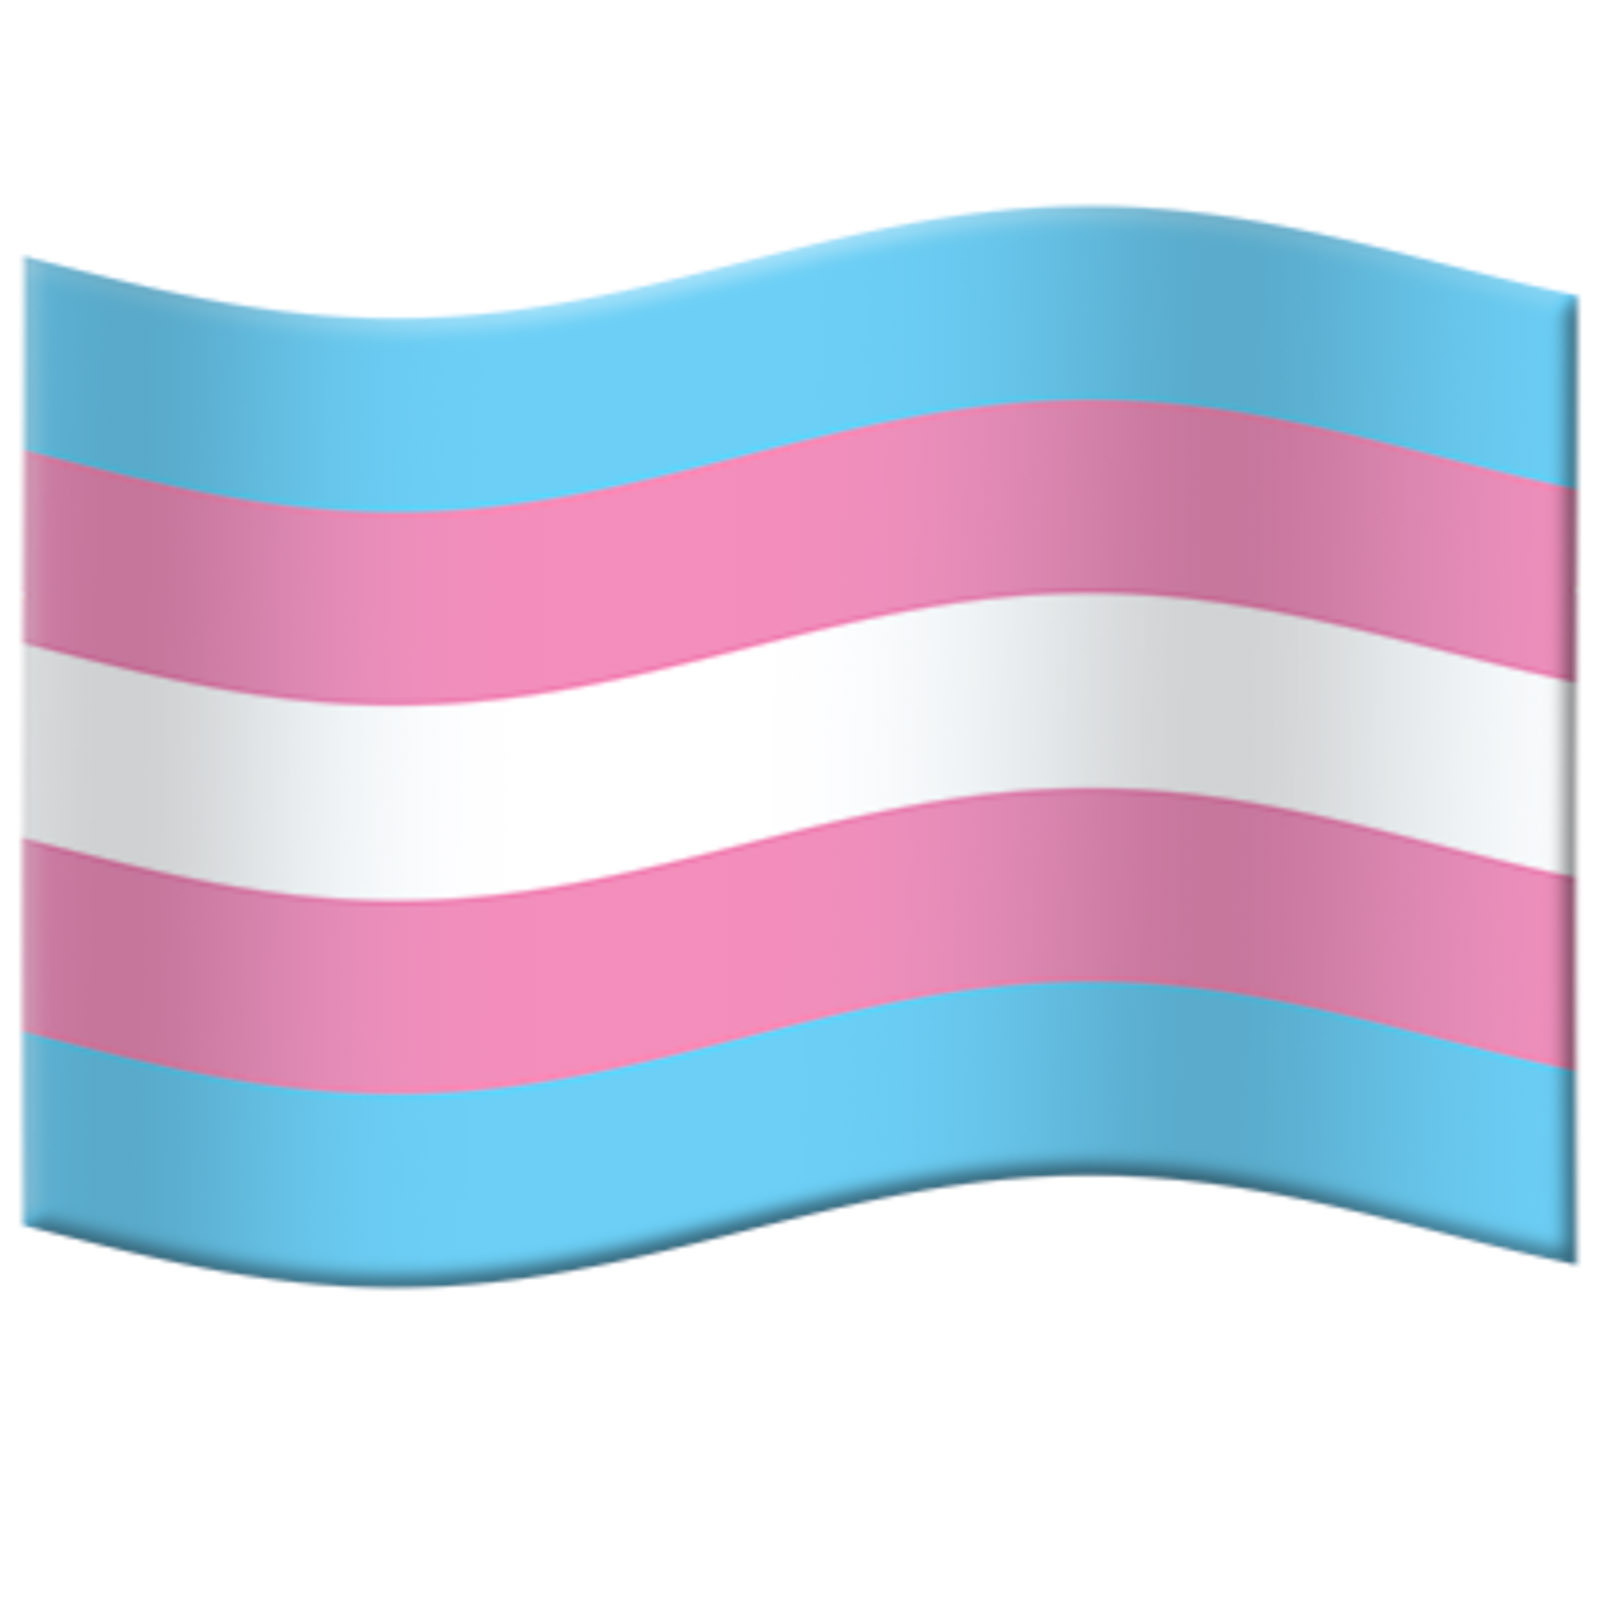 Transgender Pride Flag Emoji – FINAL FOR 2020!